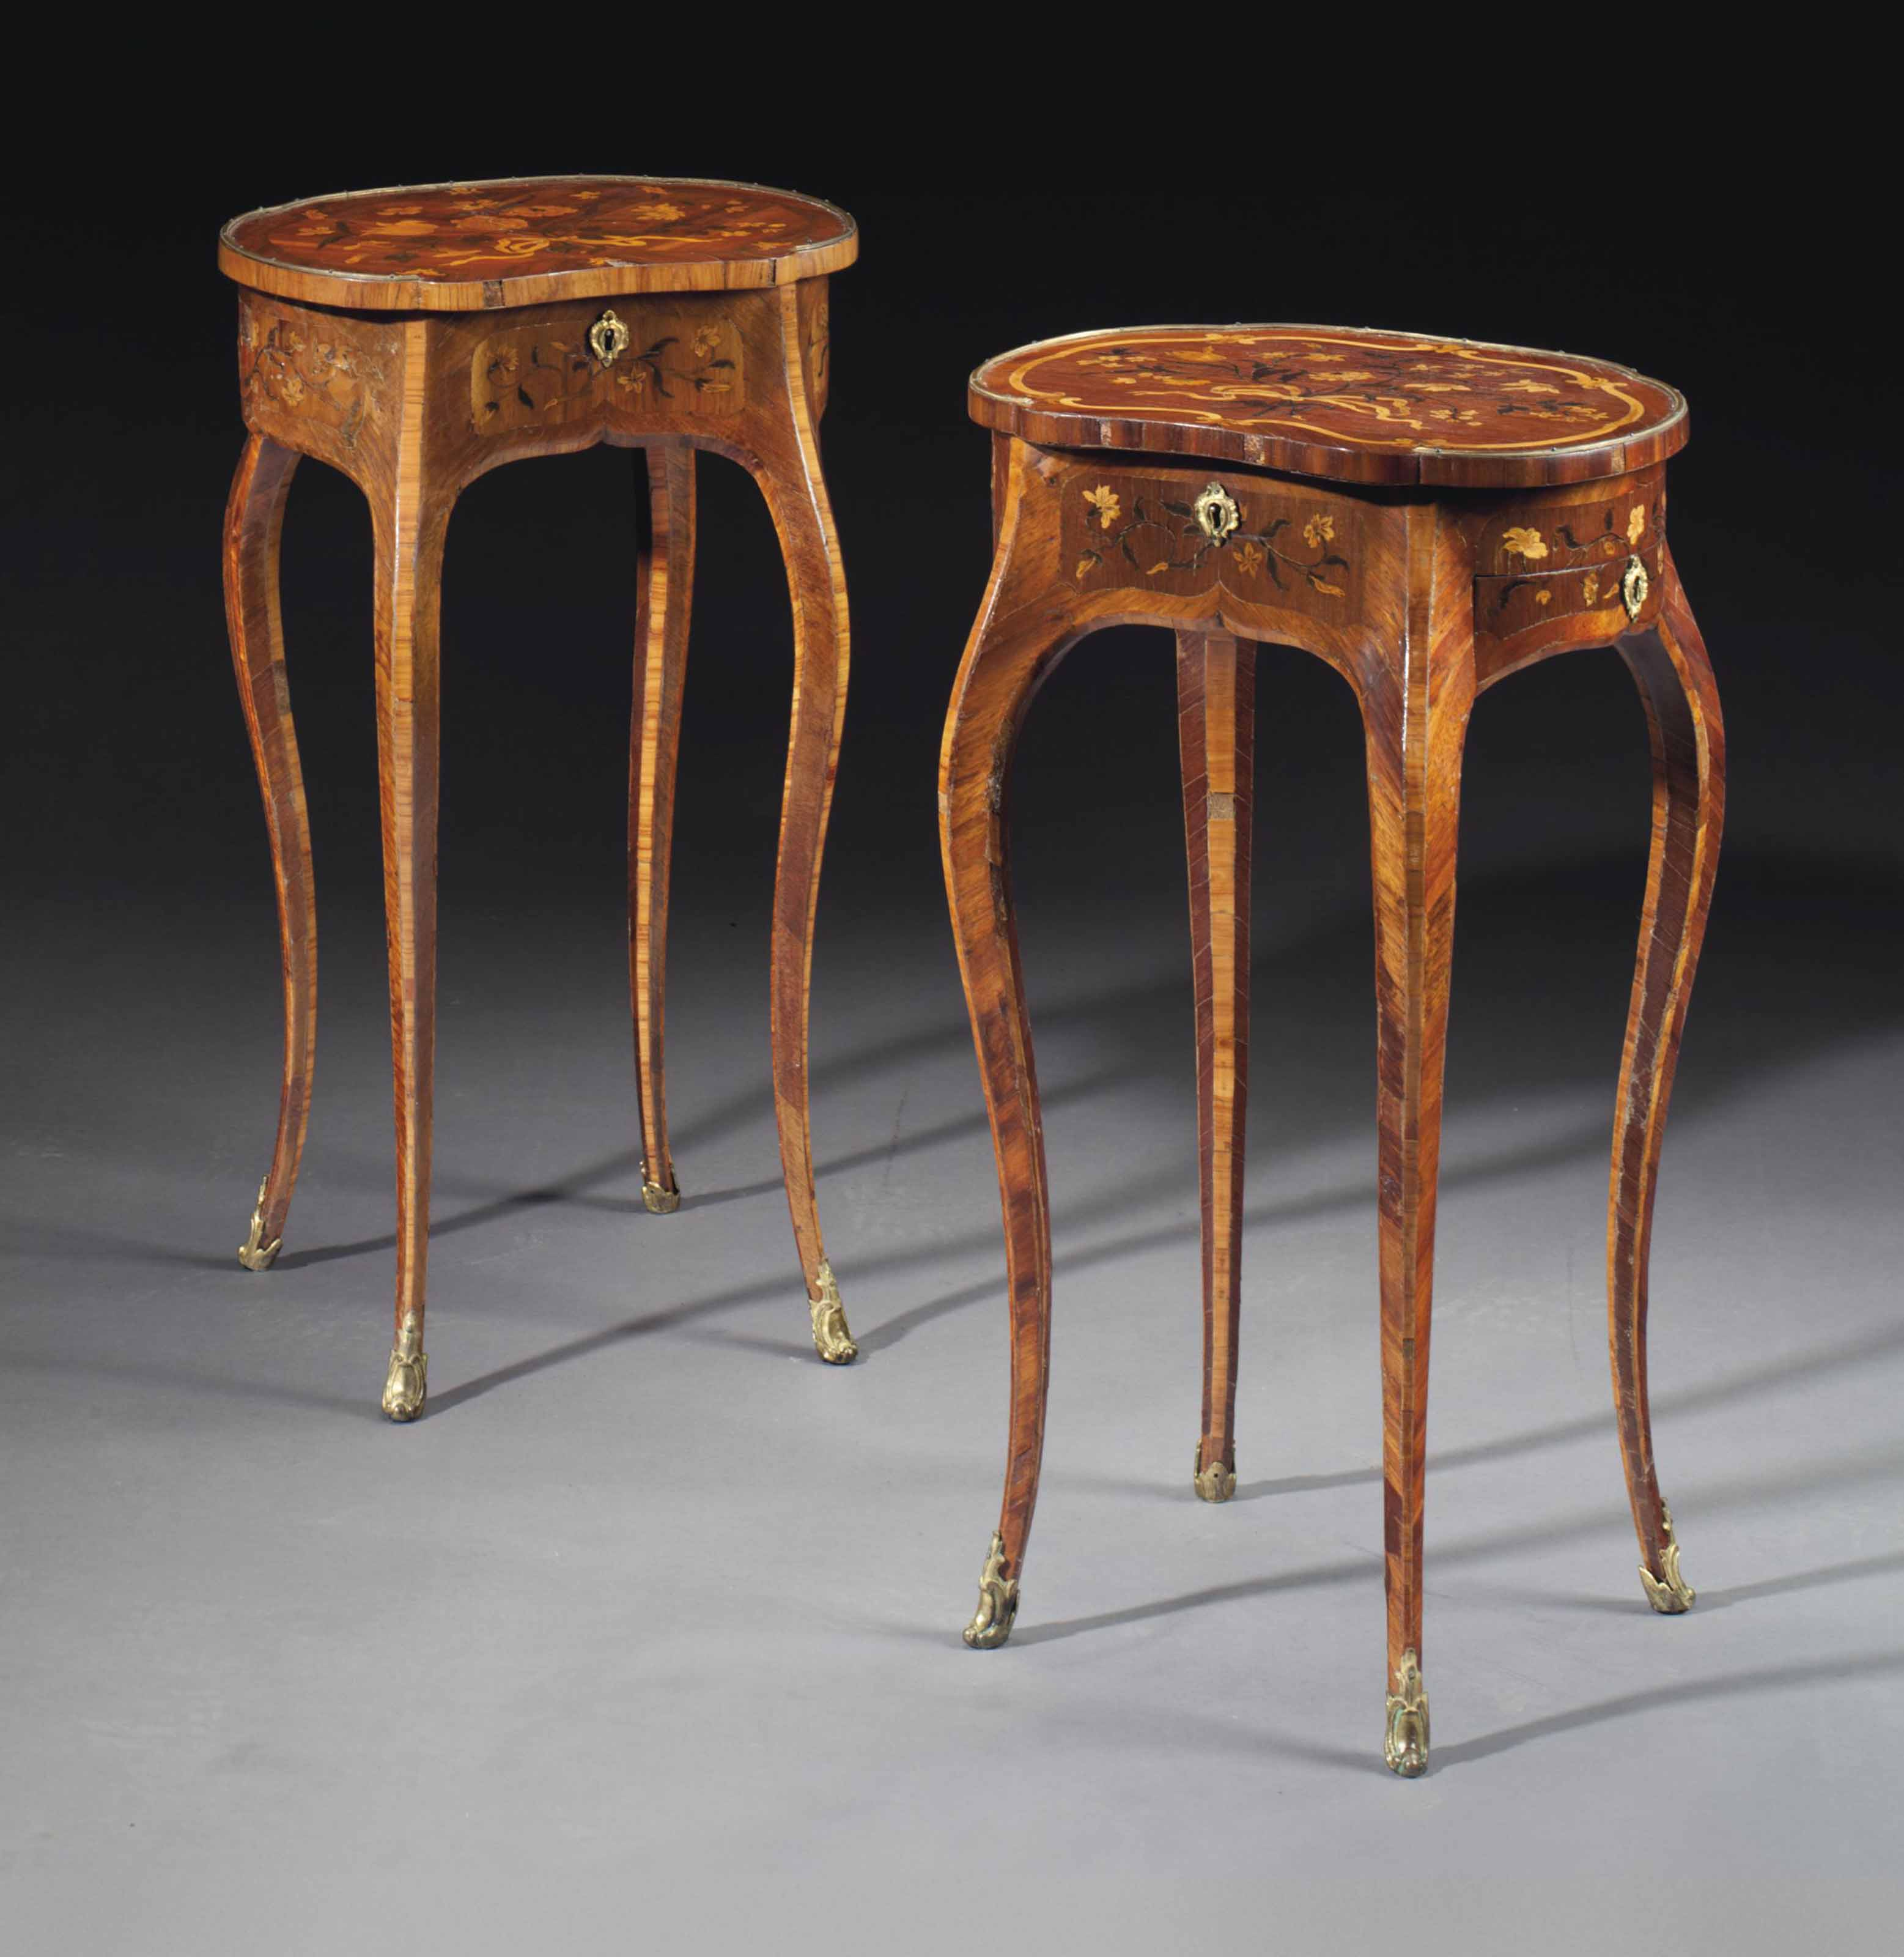 A NEAR PAIR OF LOUIS XV ORMOLU-MOUNTED BOIS SATINE, AMARANTH, TULIPWOOD AND MARQUETRY OCCASIONAL TABLES